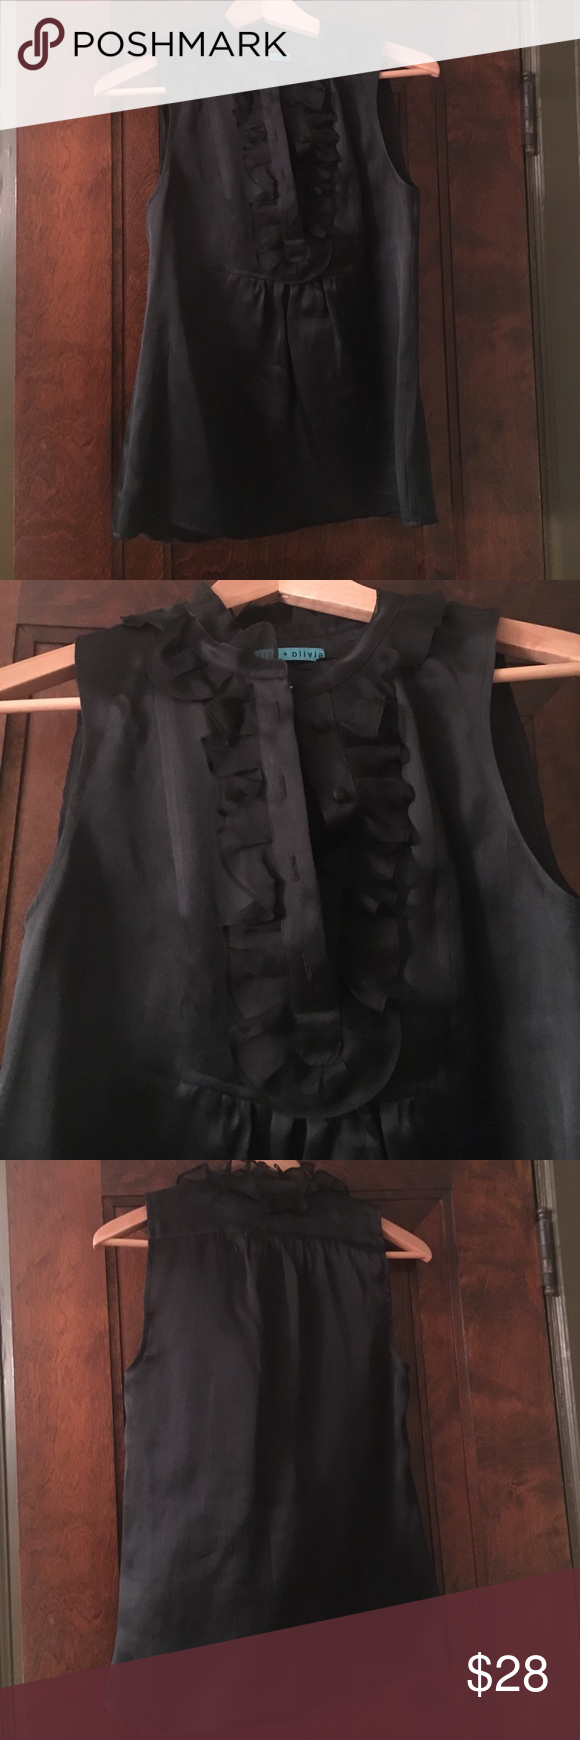 Alice and Olivia tuxedo sleeveless silk blouse. Alice and Olivia tuxedo sleeveless silk blouse. Four front functional buttons, festive ruffle detail, 100% silk. Alice + Olivia Tops Blouses